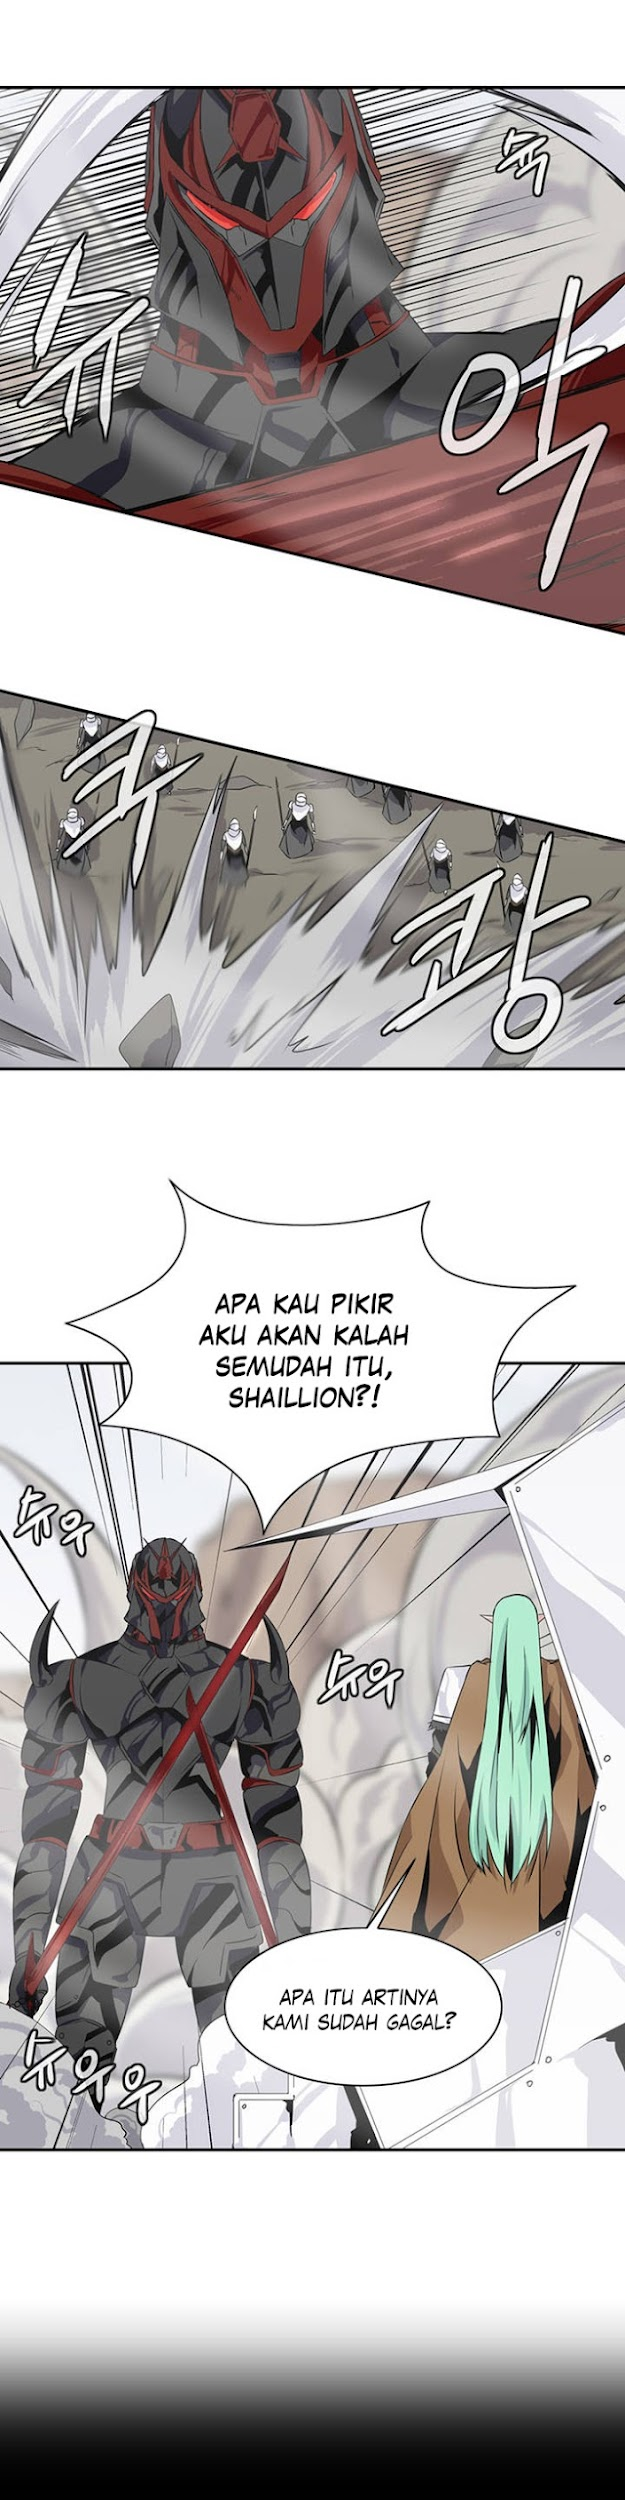 Wizardly Tower Chapter 50